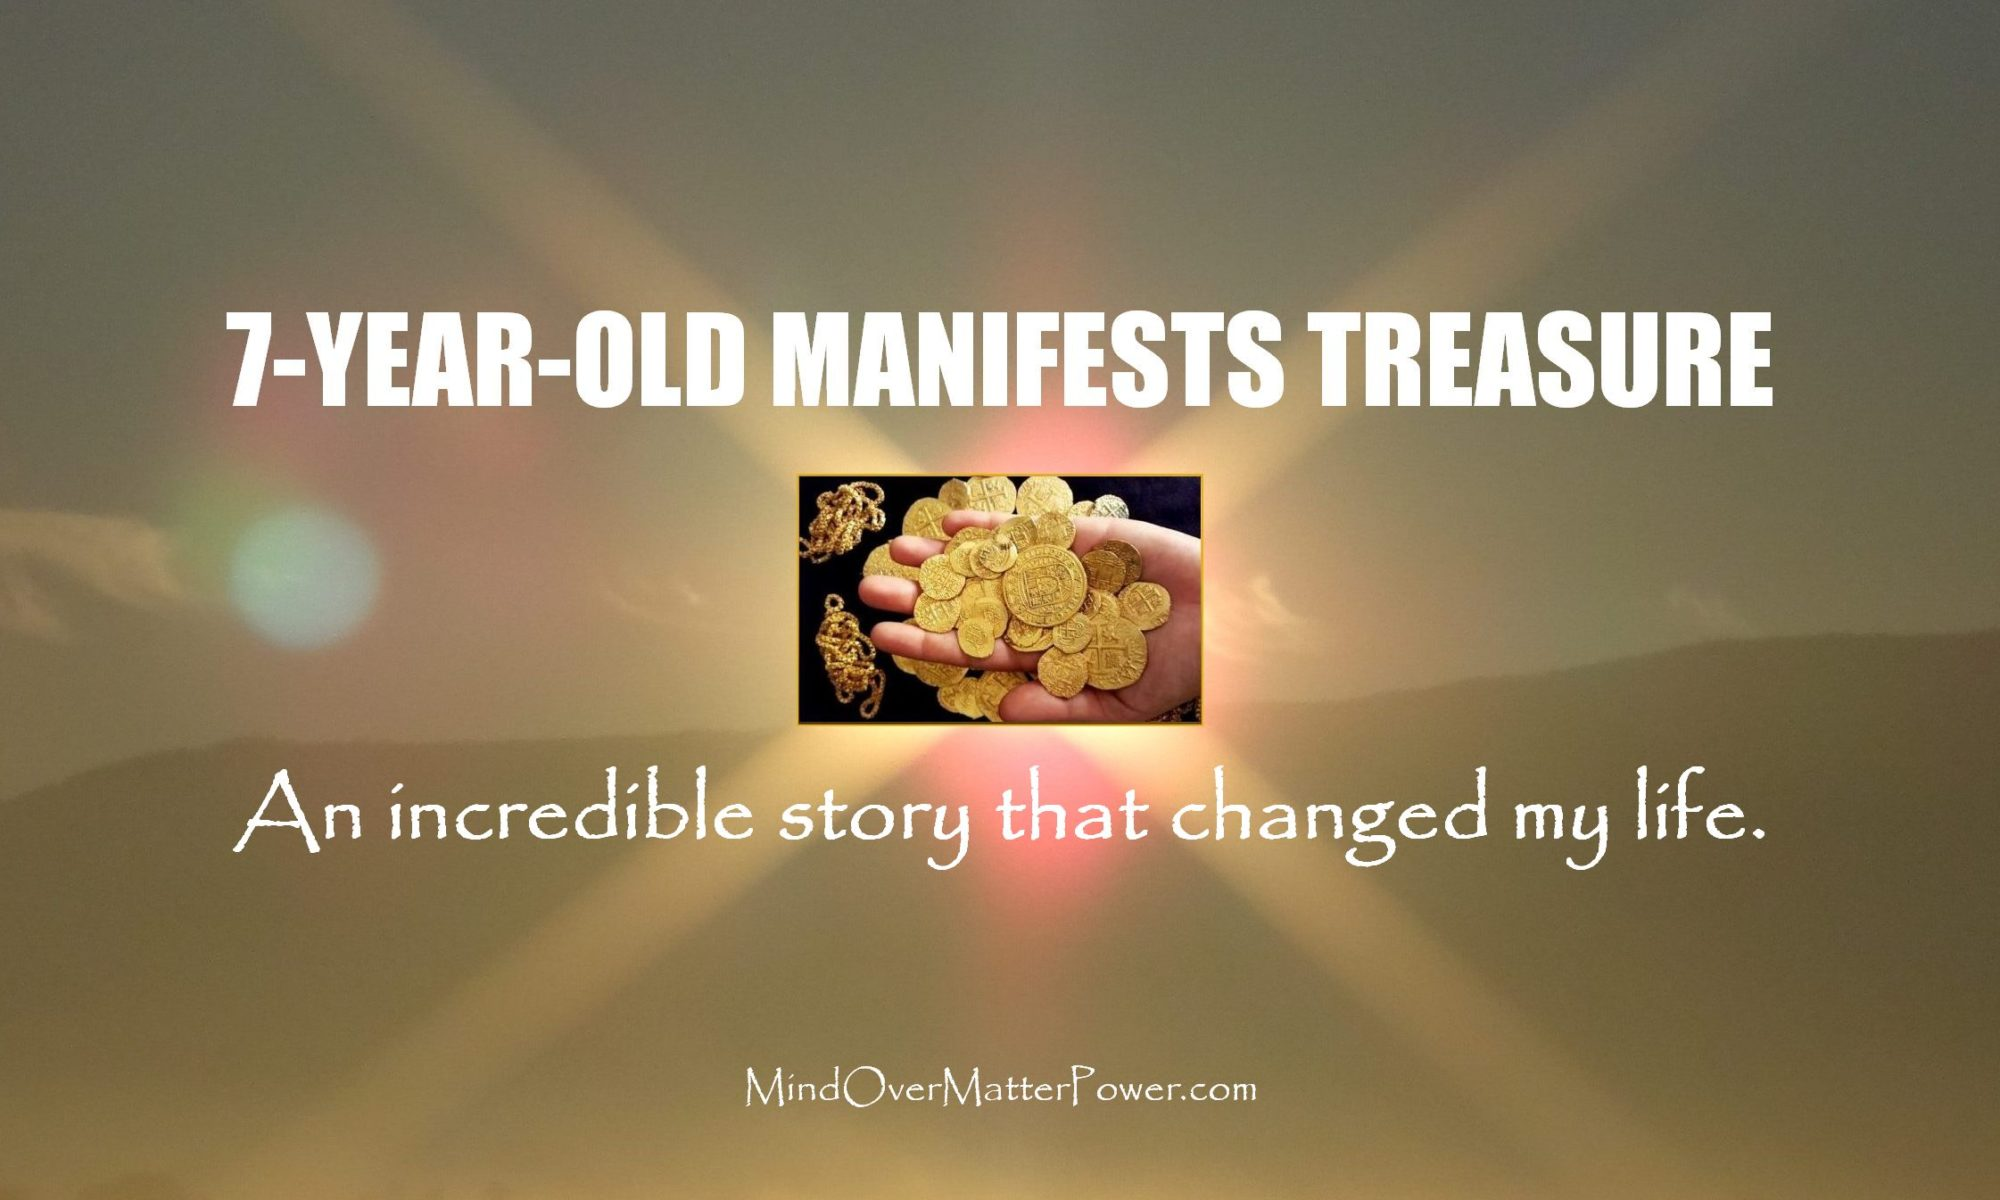 At seven years old I manifest treasure. The money appeared as I did a good deed.